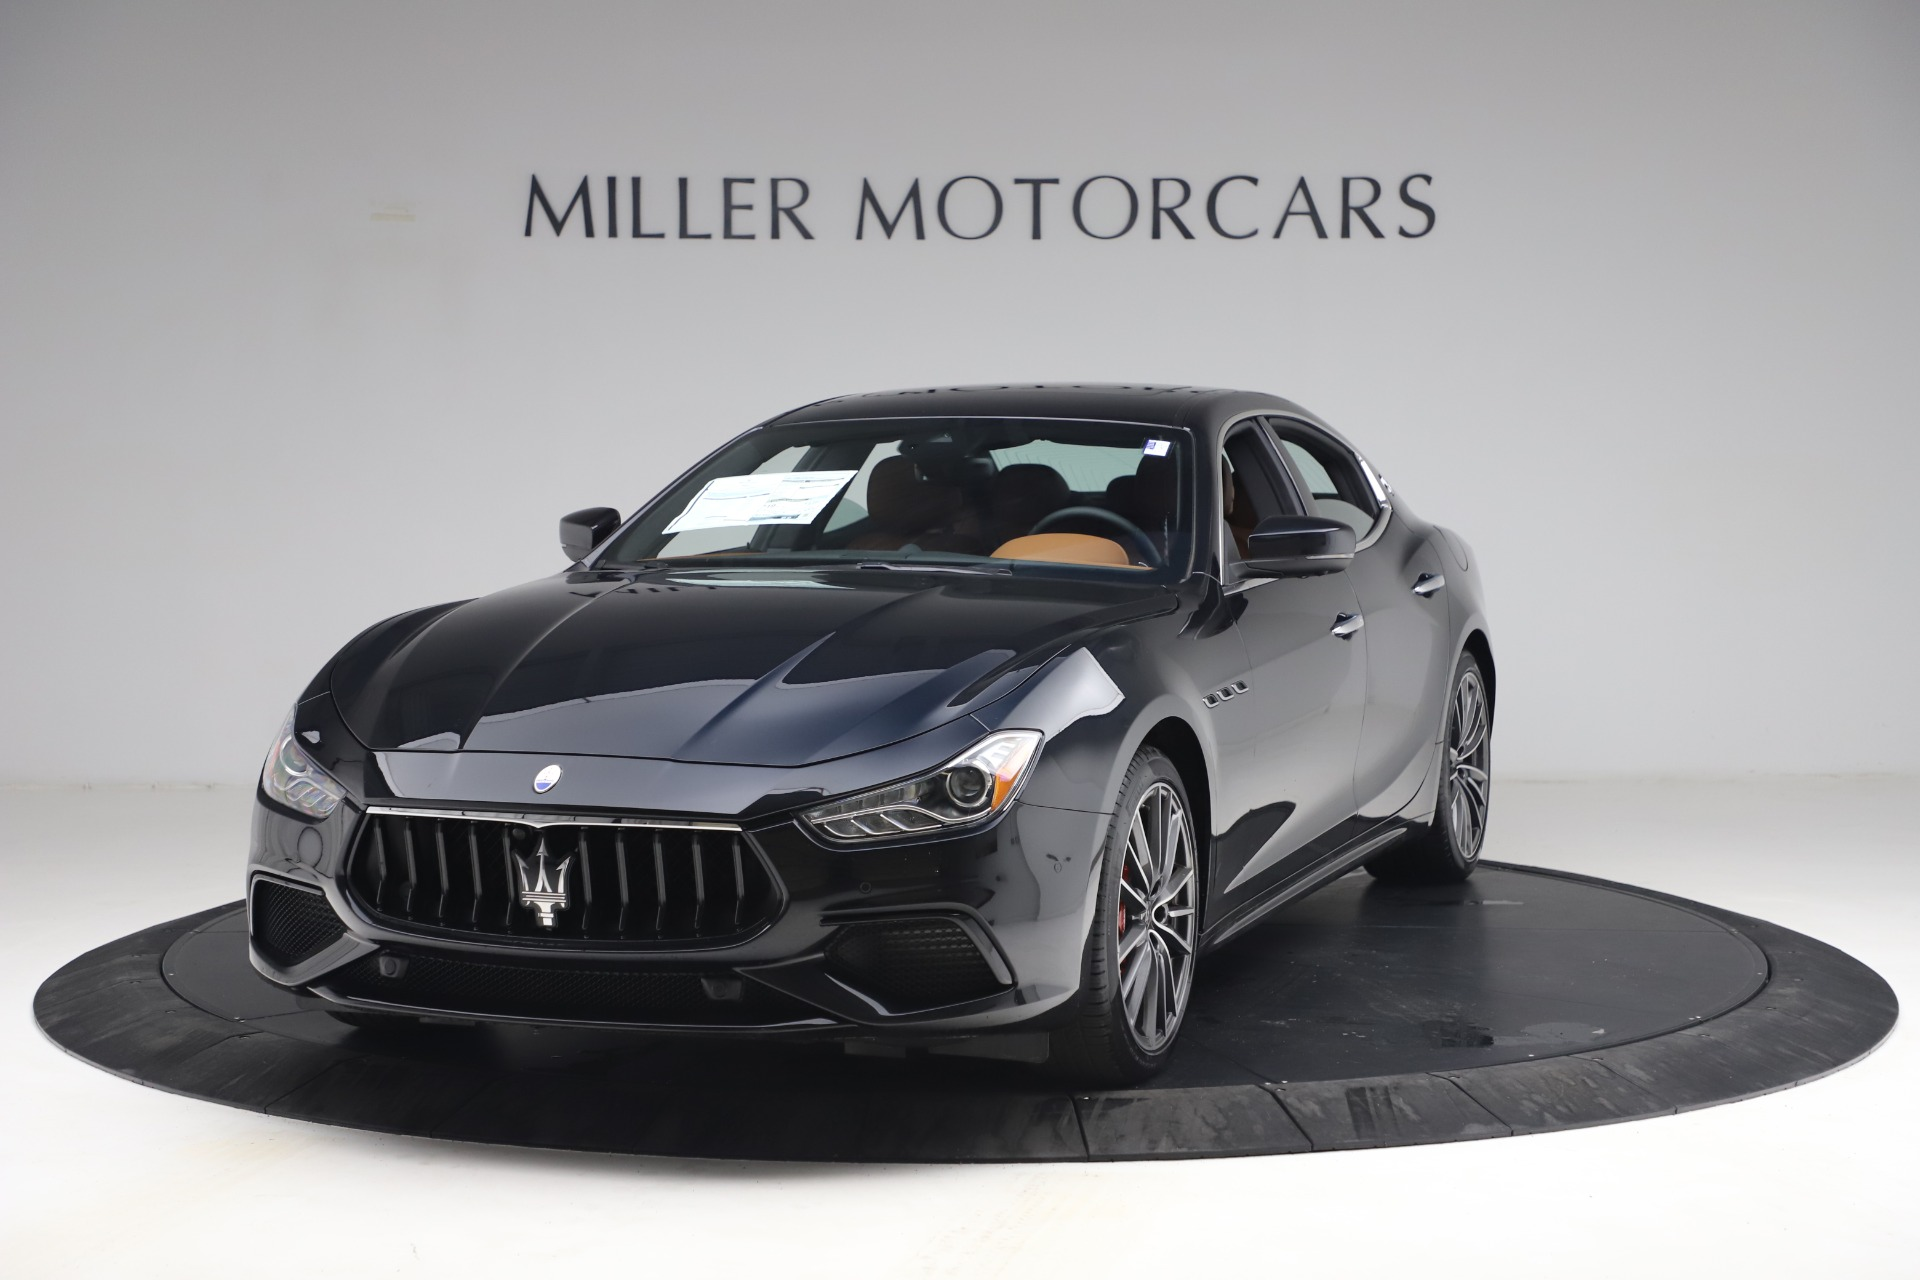 New 2021 Maserati Ghibli S Q4 for sale $90,675 at Bentley Greenwich in Greenwich CT 06830 1